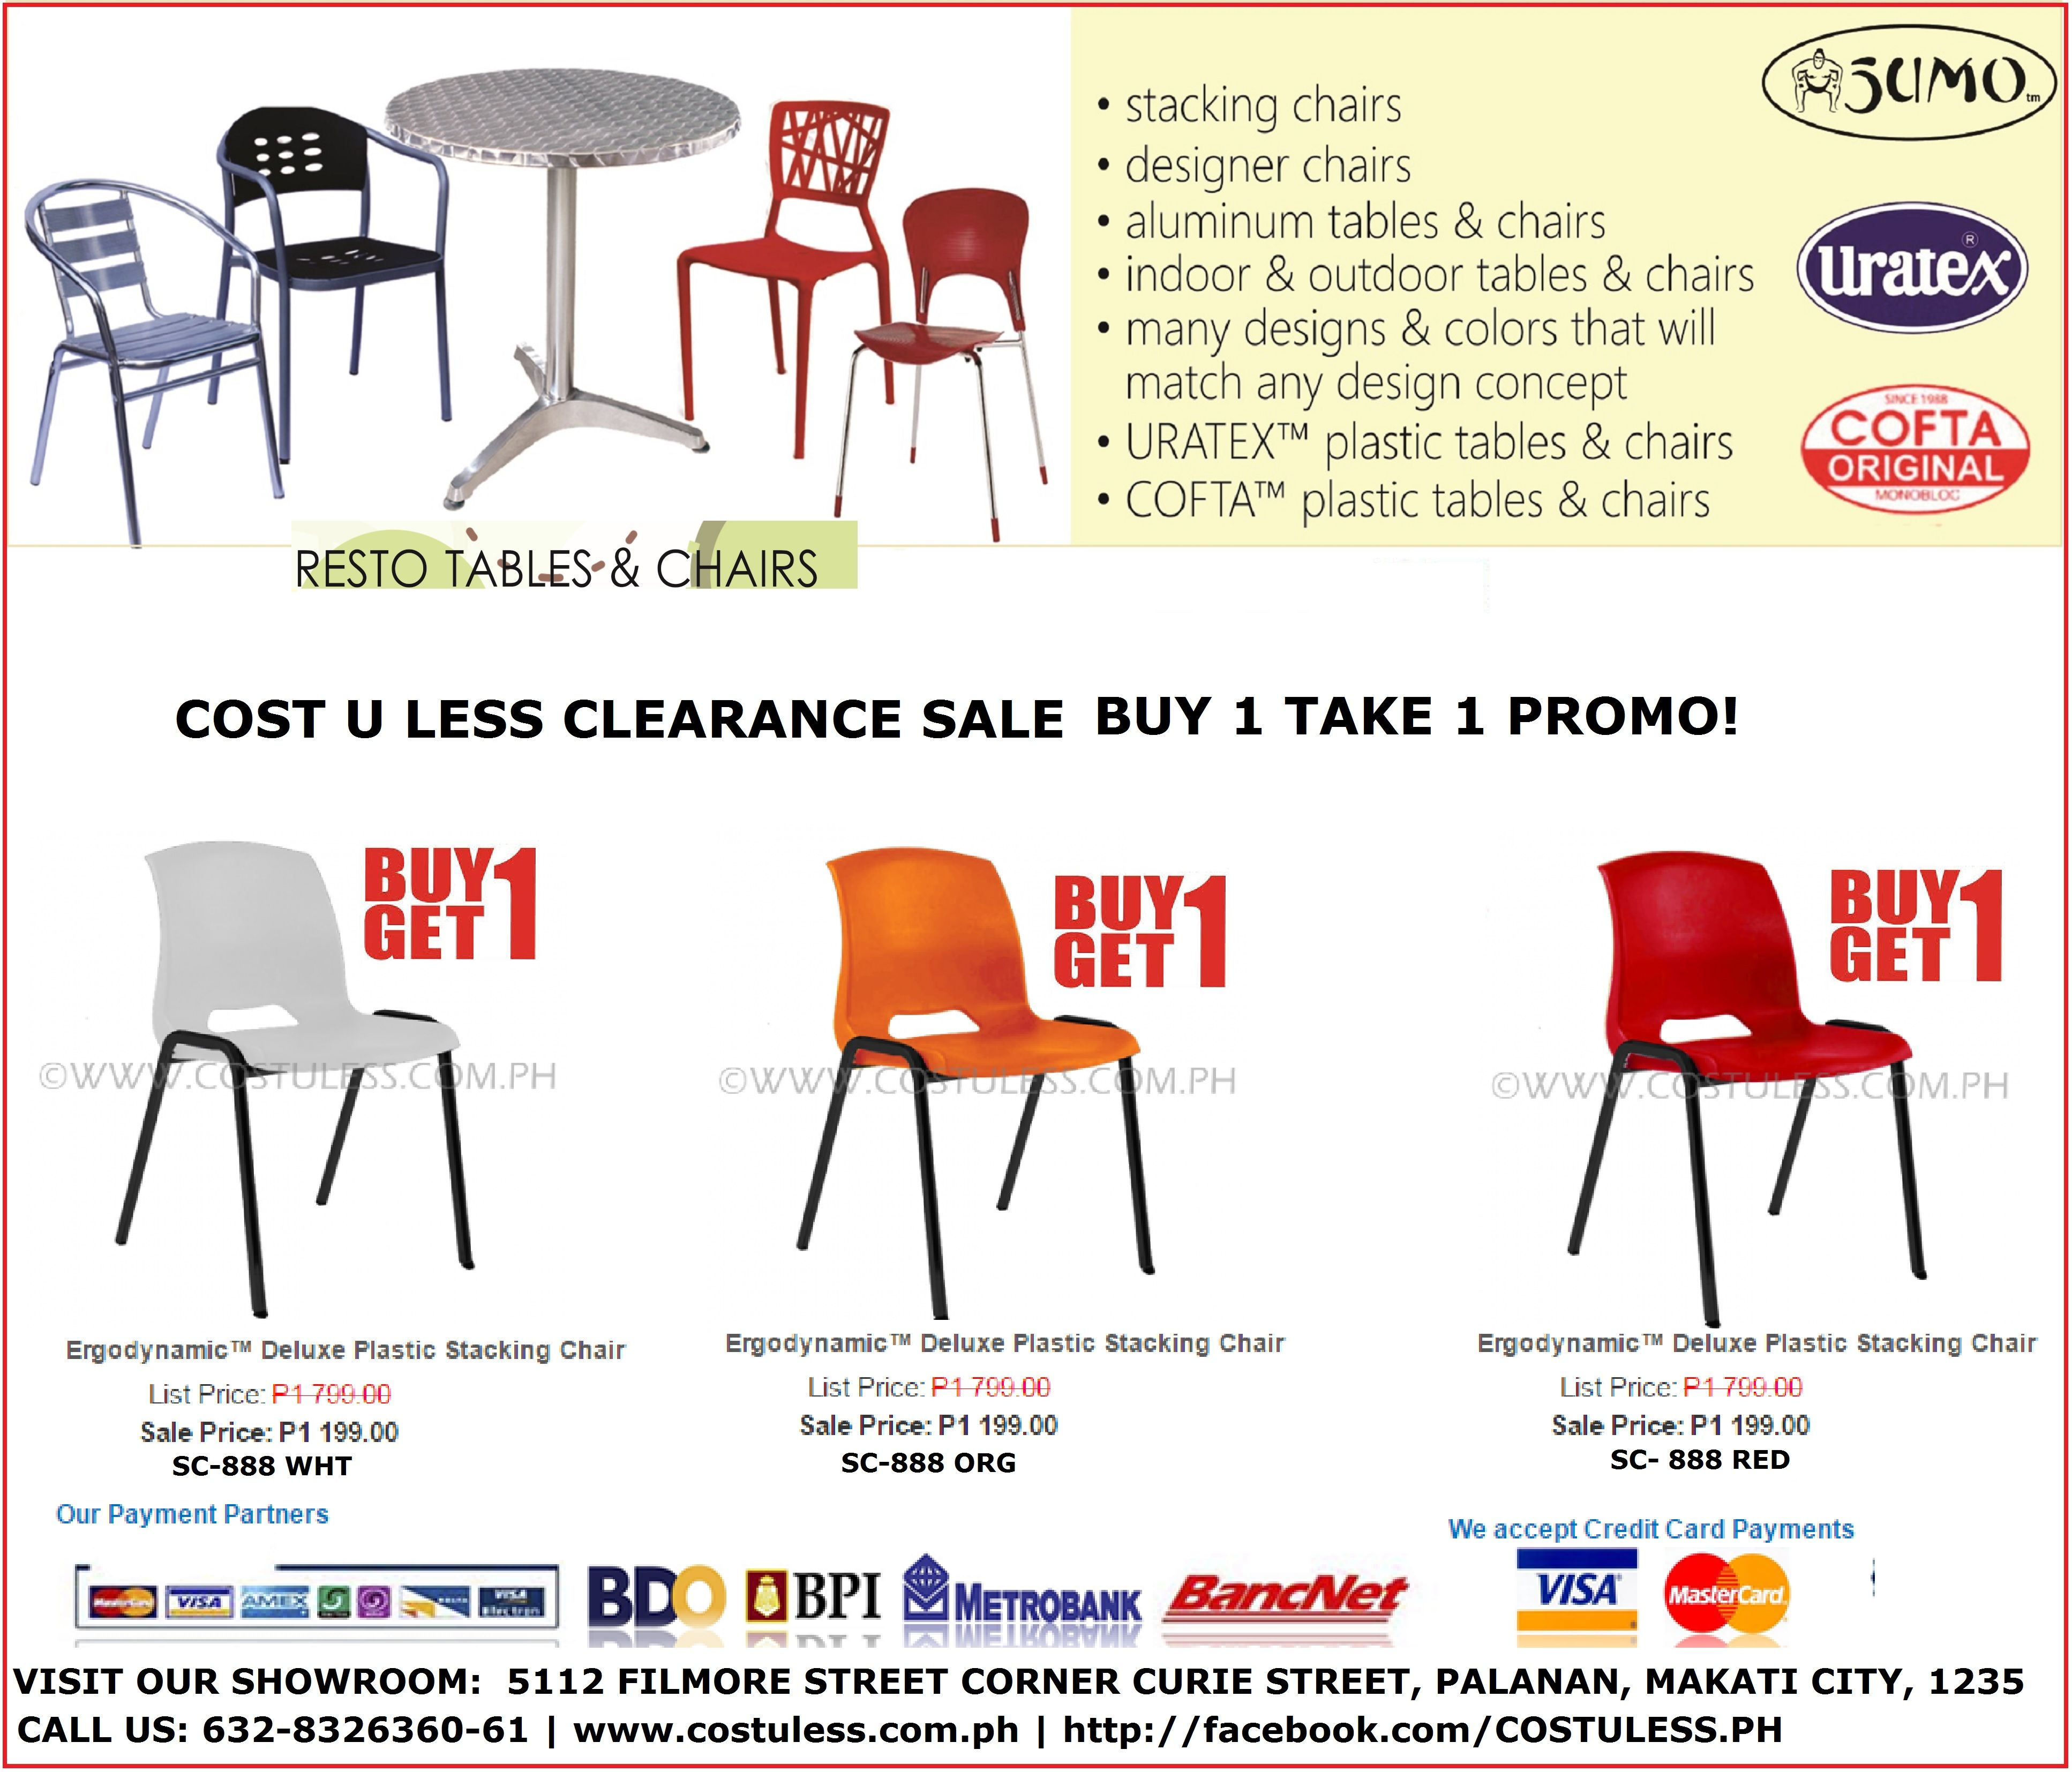 Restaurant Furniture For Less Home Restaurant Furniture Sale Cost U Less Clearance Promo Buy